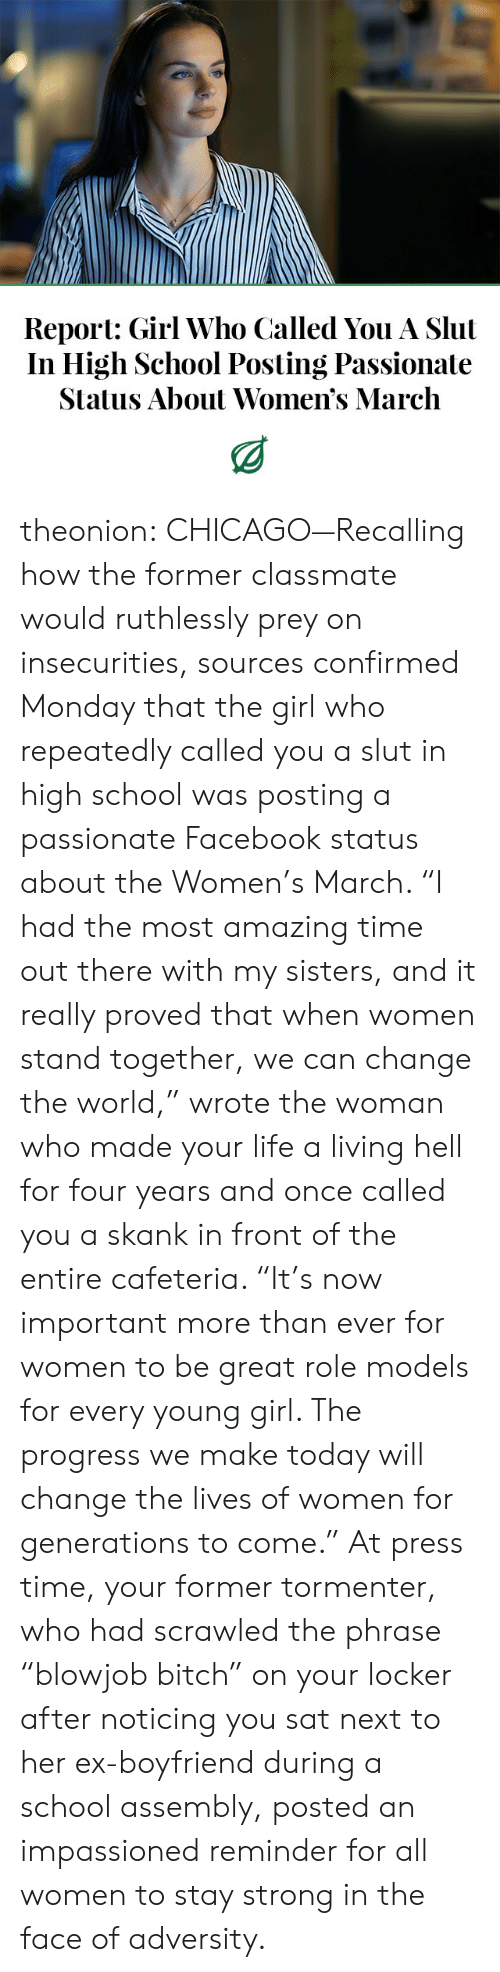 "Womens March: Report: Girl Who Called You A Slut  In High School Posting Passionate  Status About Women's March theonion:  CHICAGO—Recalling how the former classmate would ruthlessly prey on insecurities, sources confirmed Monday that the girl who repeatedly called you a slut in high school was posting a passionate Facebook status about the Women's March. ""I had the most amazing time out there with my sisters, and it really proved that when women stand together, we can change the world,"" wrote the woman who made your life a living hell for four years and once called you a skank in front of the entire cafeteria. ""It's now important more than ever for women to be great role models for every young girl. The progress we make today will change the lives of women for generations to come."" At press time, your former tormenter, who had scrawled the phrase ""blowjob bitch"" on your locker after noticing you sat next to her ex-boyfriend during a school assembly, posted an impassioned reminder for all women to stay strong in the face of adversity."